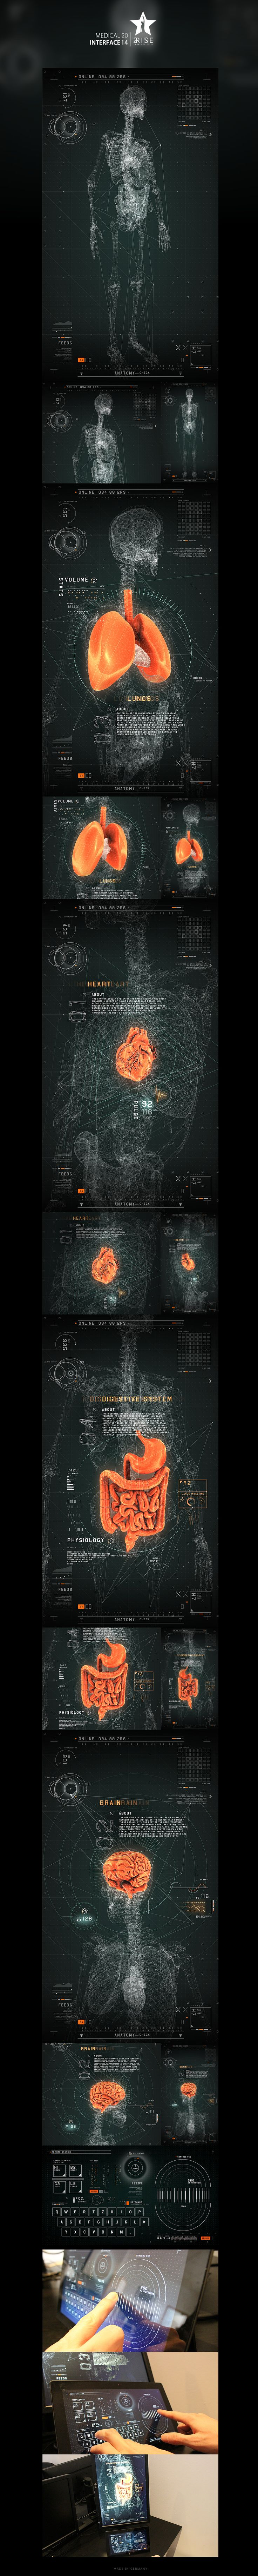 #2RISE FUTURISTIC MEDICAL INTERFACE by Jedi88.deviantart.com on @deviantART